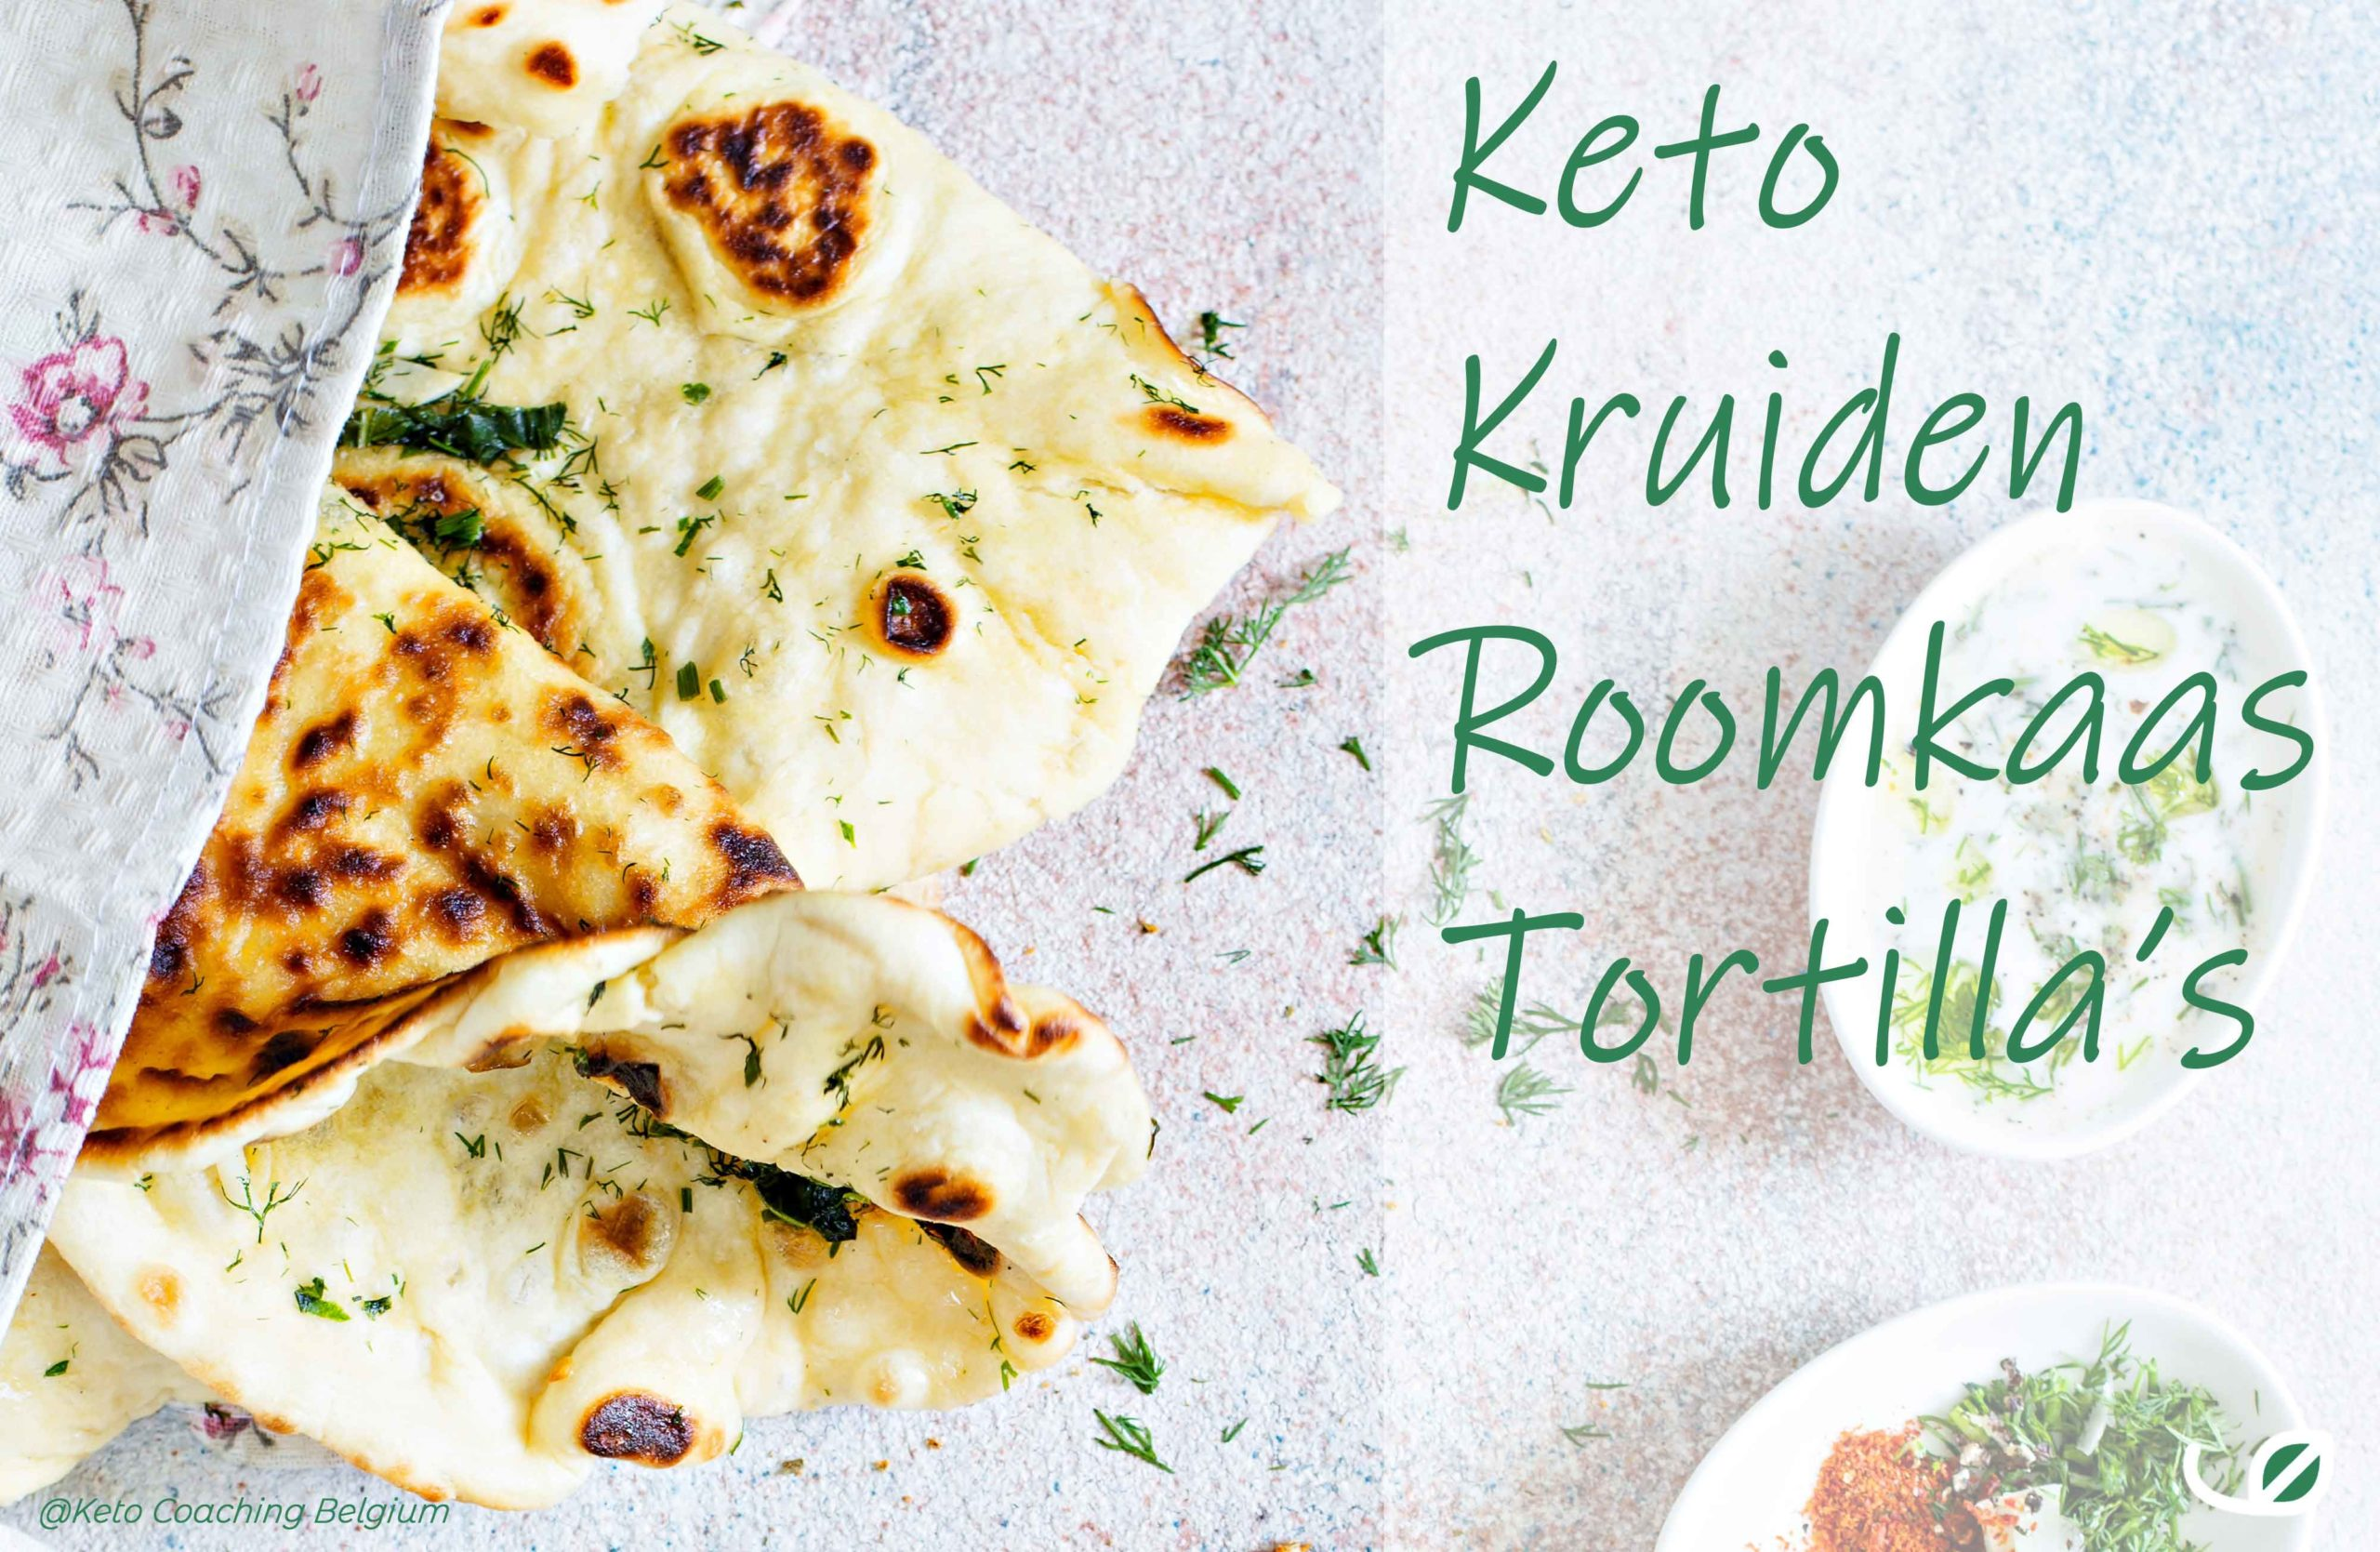 Keto Kruidenkaas roomkaas tortilla wrap